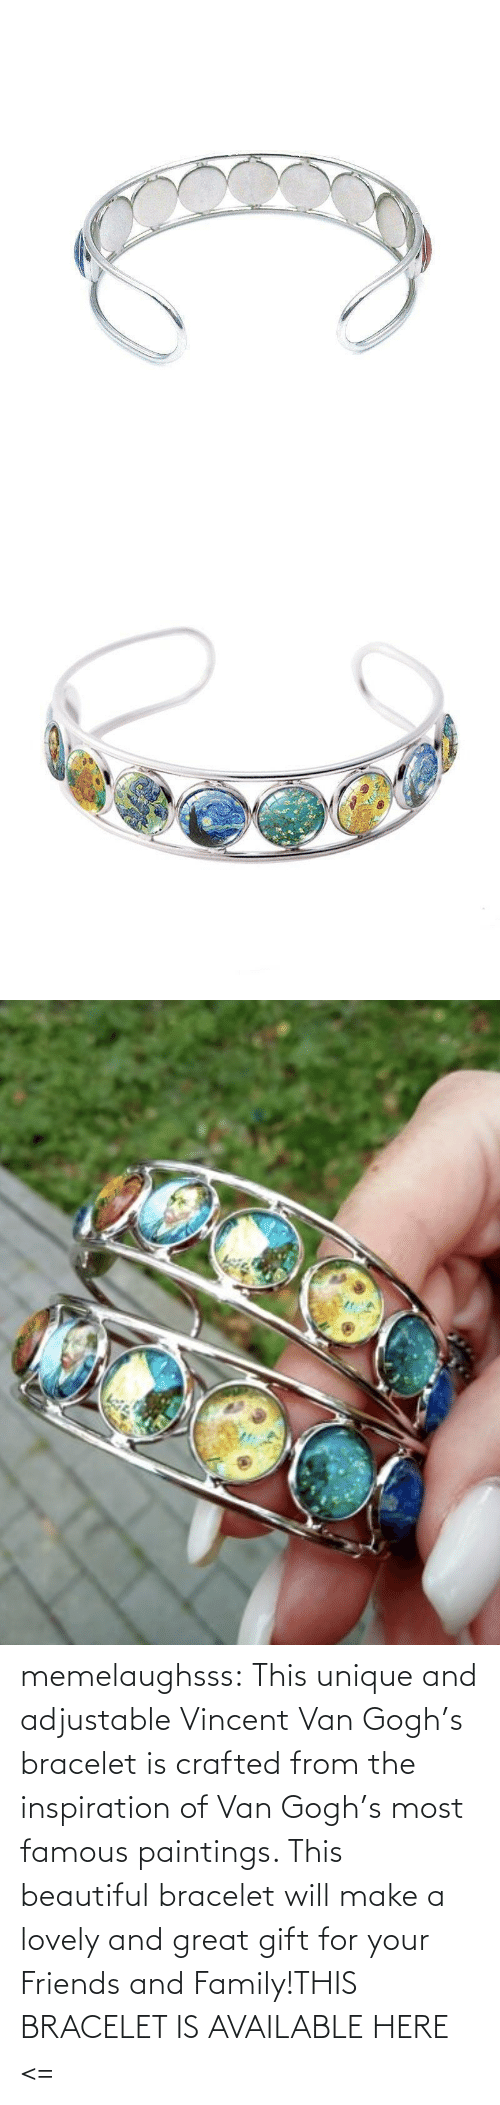 Beautiful, Family, and Friends: memelaughsss:  This unique and adjustable Vincent Van Gogh's bracelet is crafted from the inspiration of Van Gogh's most famous paintings. This beautiful bracelet will make a lovely and great gift for your Friends and Family!THIS BRACELET IS AVAILABLE HERE <=